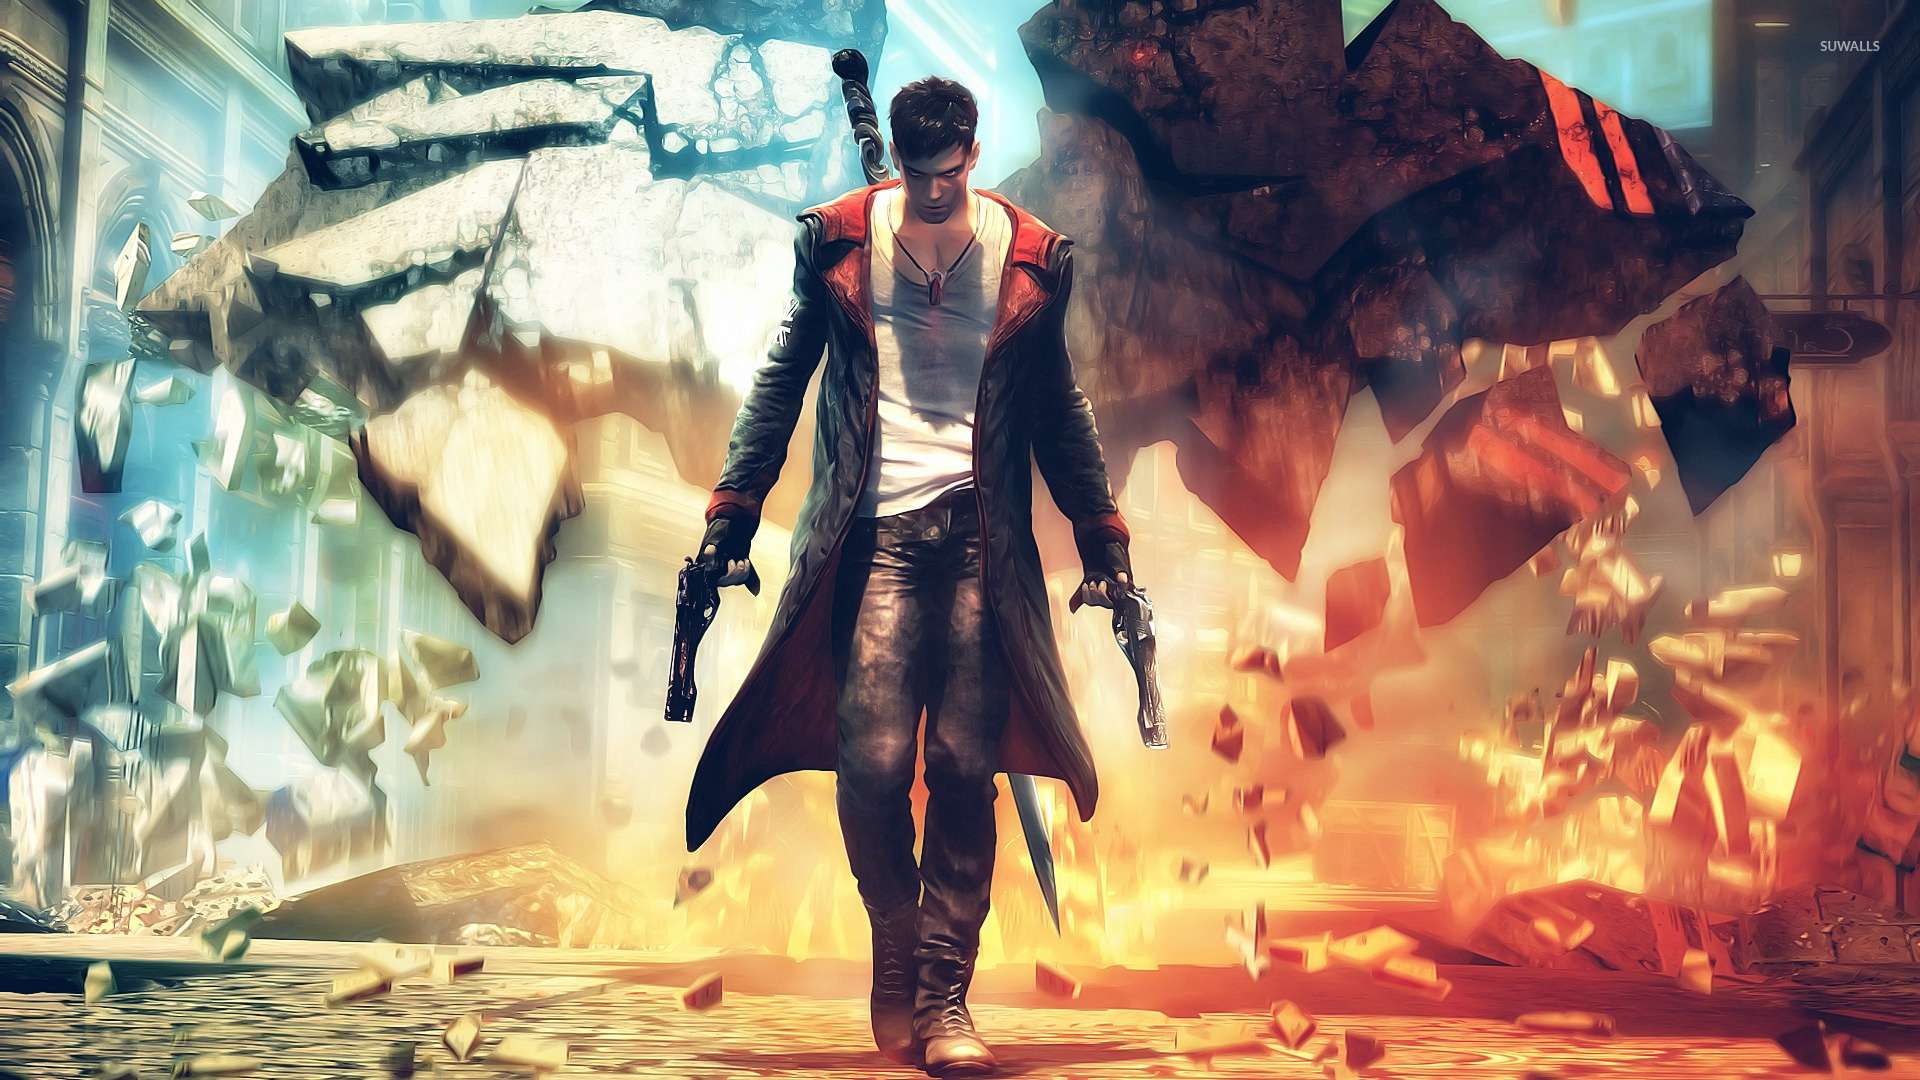 dante dmc 5 enter - photo #33